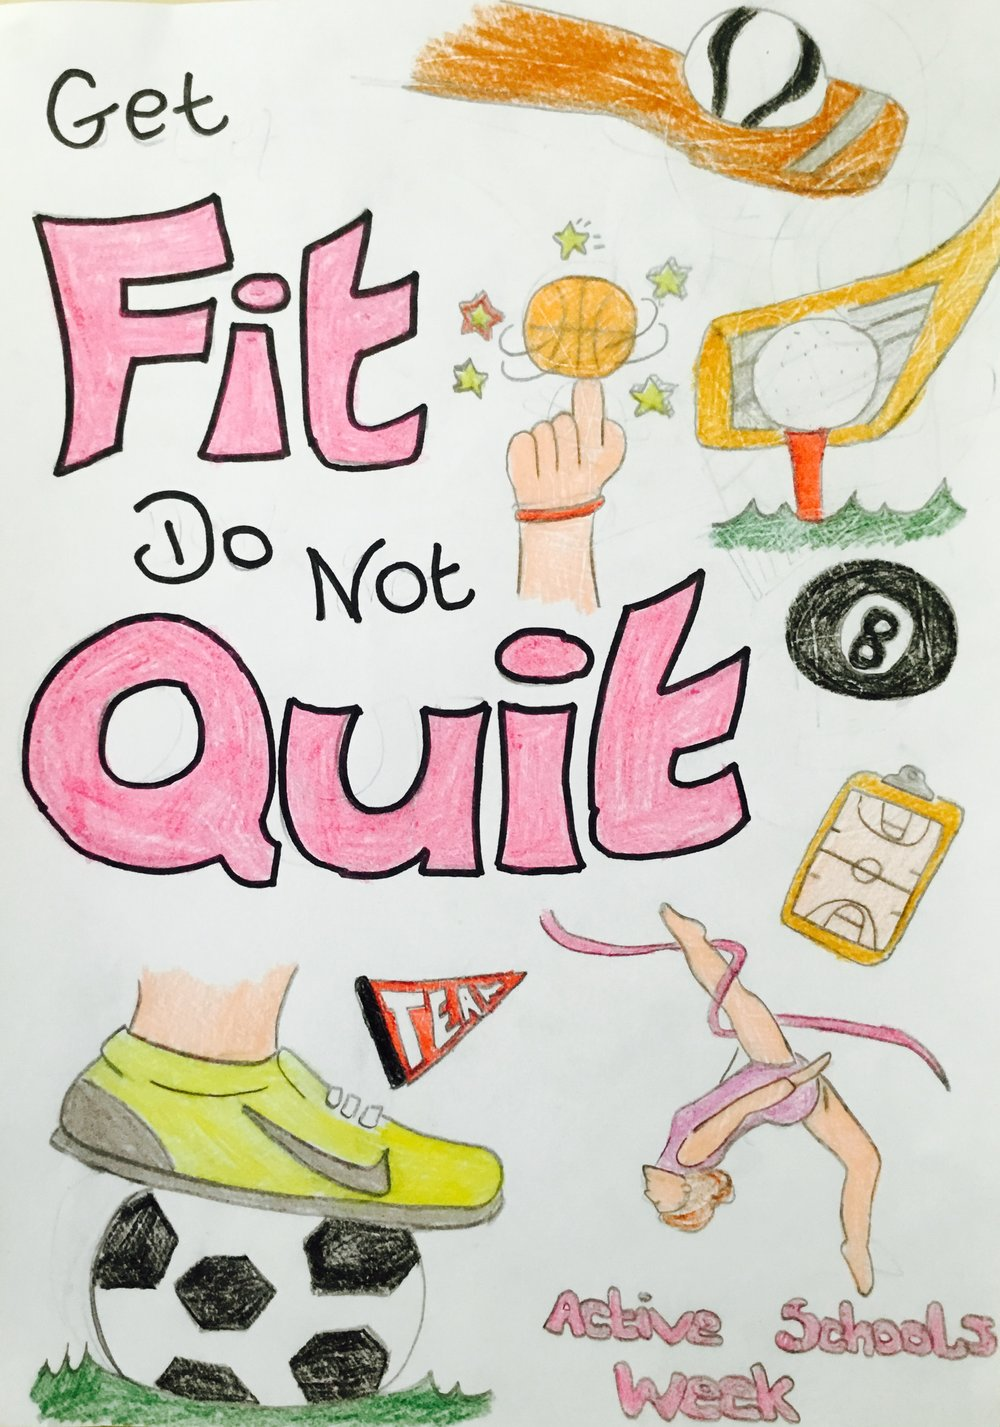 Kerry McNamara 1st year Get fit do not quit - Active schools week